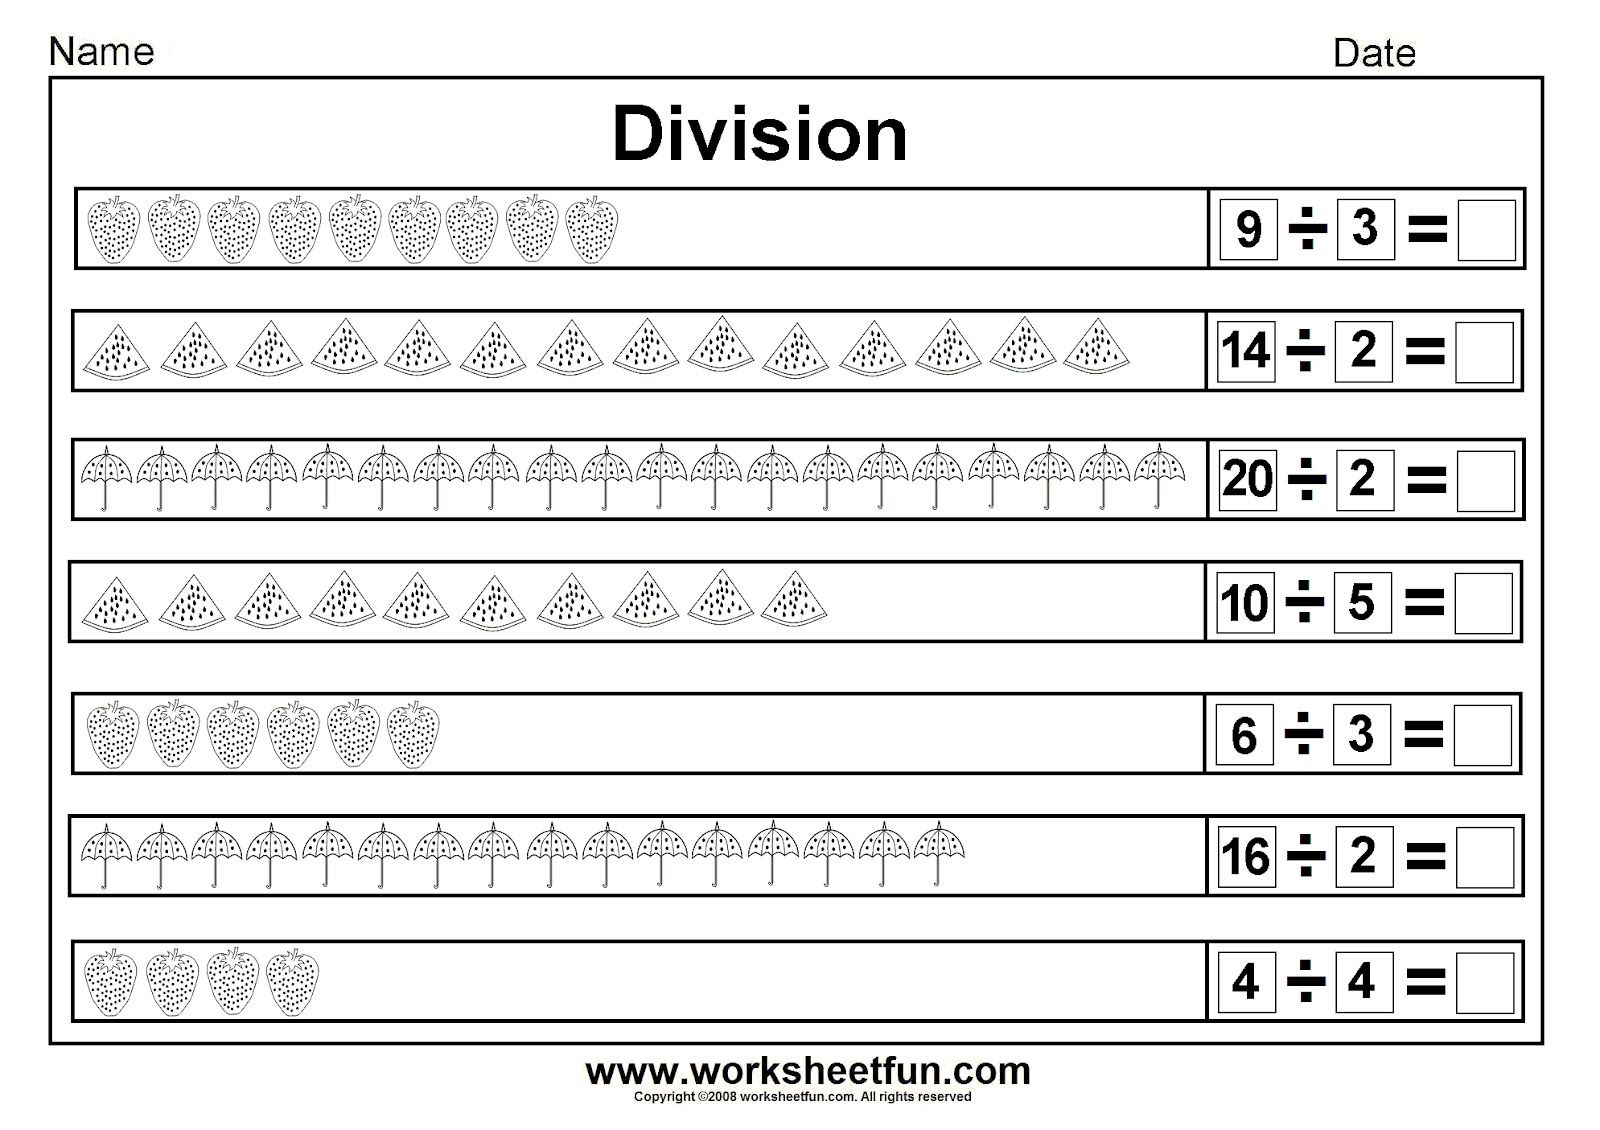 Early Division Worksheets addition and subtraction with regrouping – Early Division Worksheets